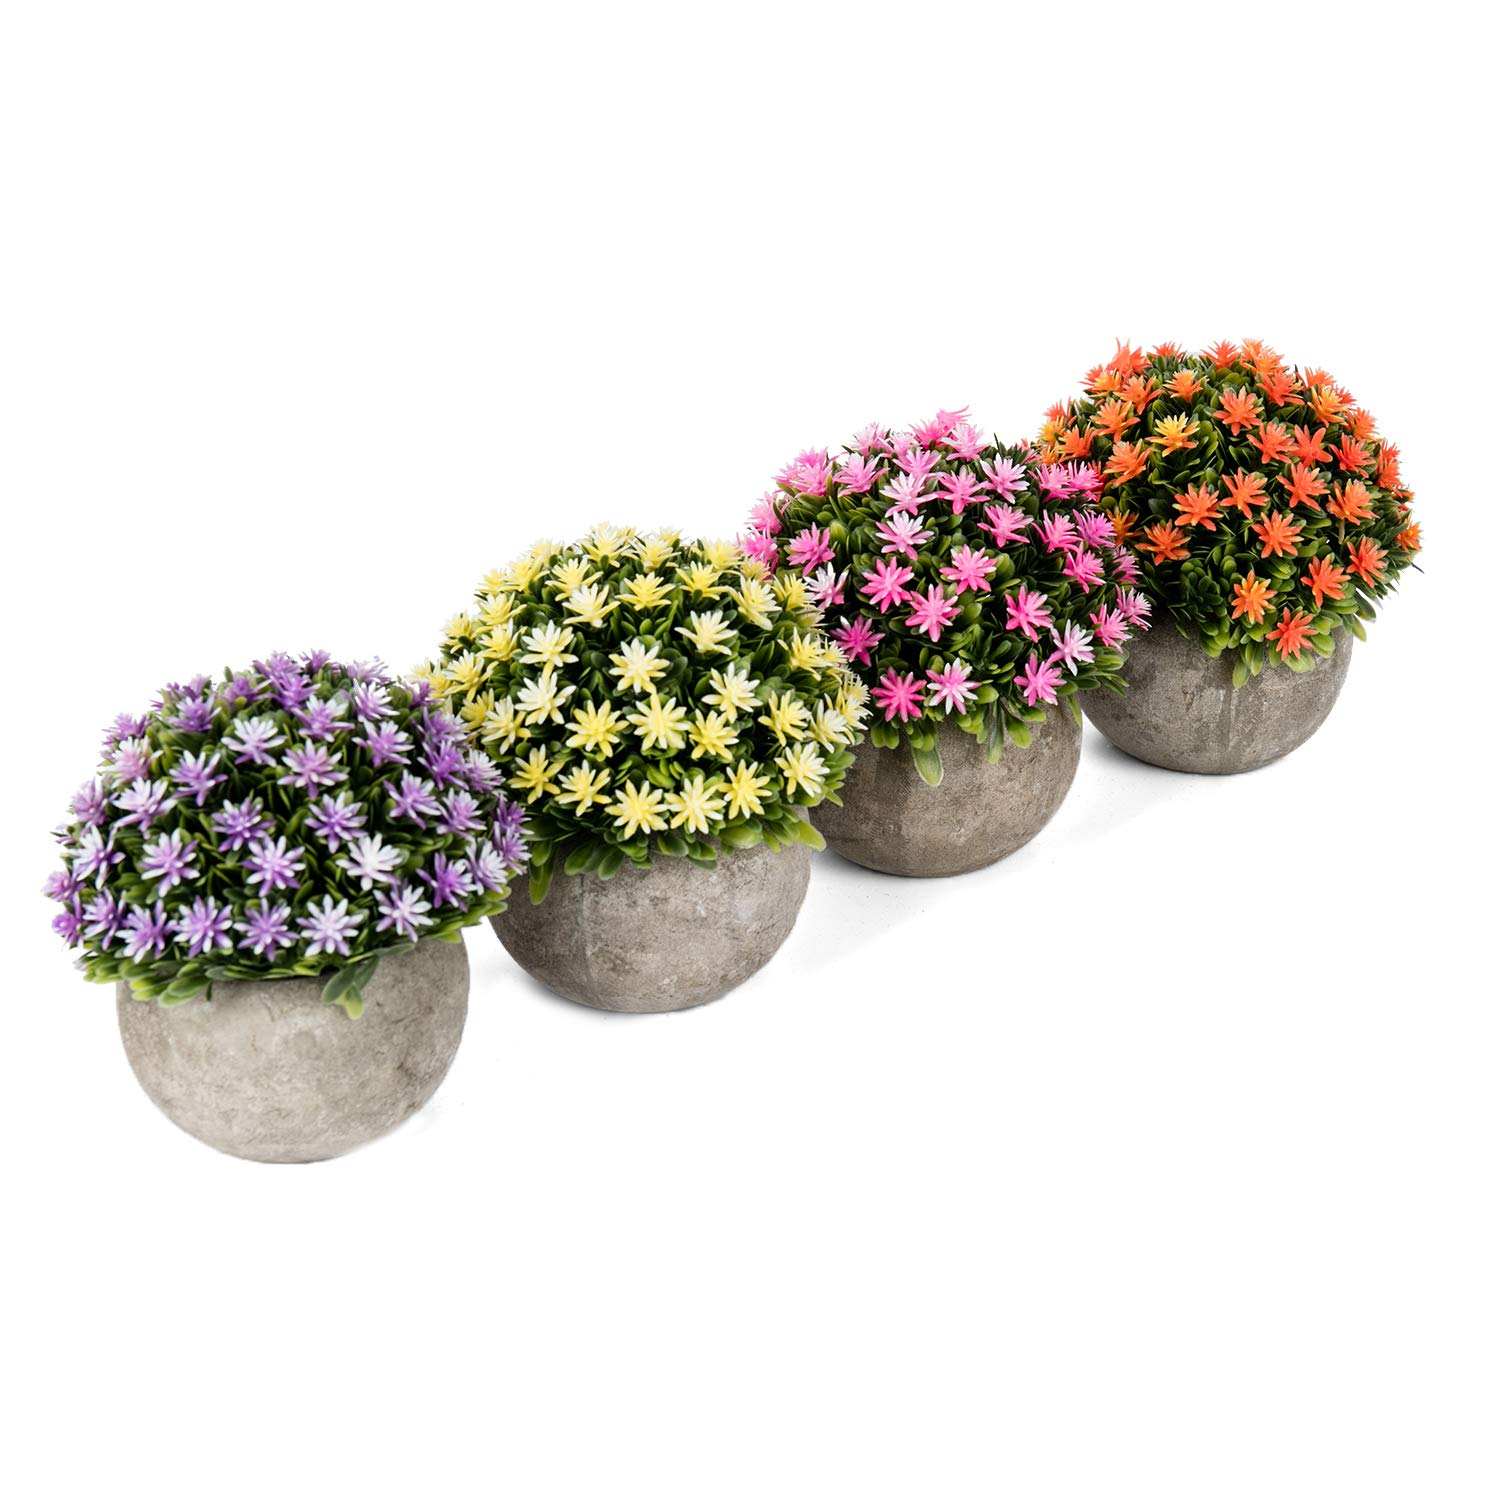 Green UArtlines 4 Pack Artificial Plastic Mini Plants Topiary Shrubs Fake Plants with Gray Pot for Bathroom,House Decorations,2 Styles